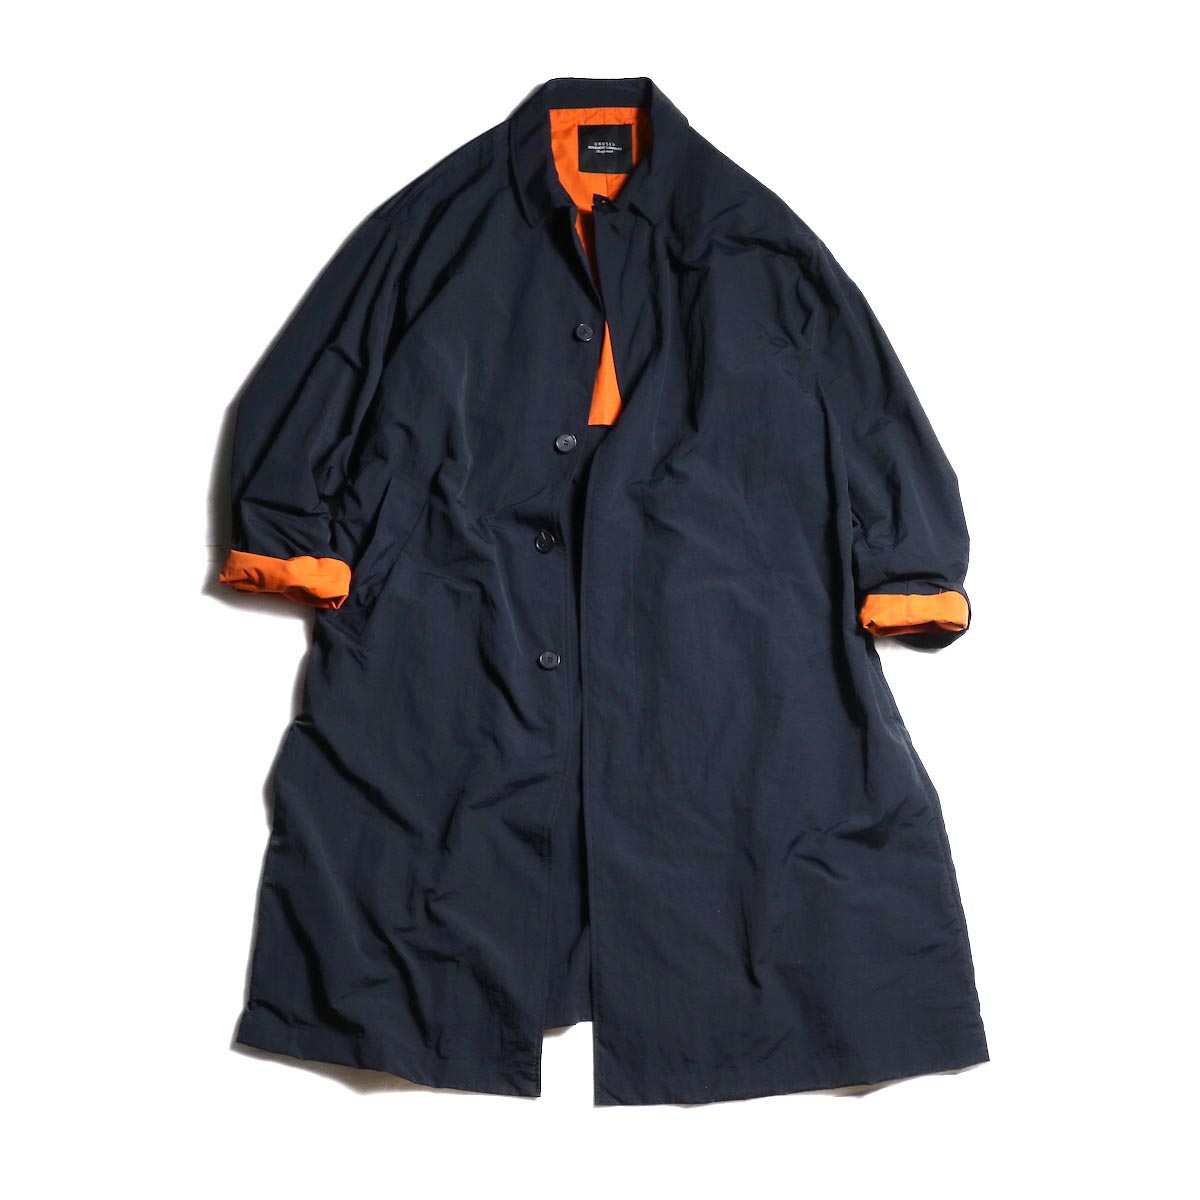 UNUSED / US1670 Nylon Coat. (Black)